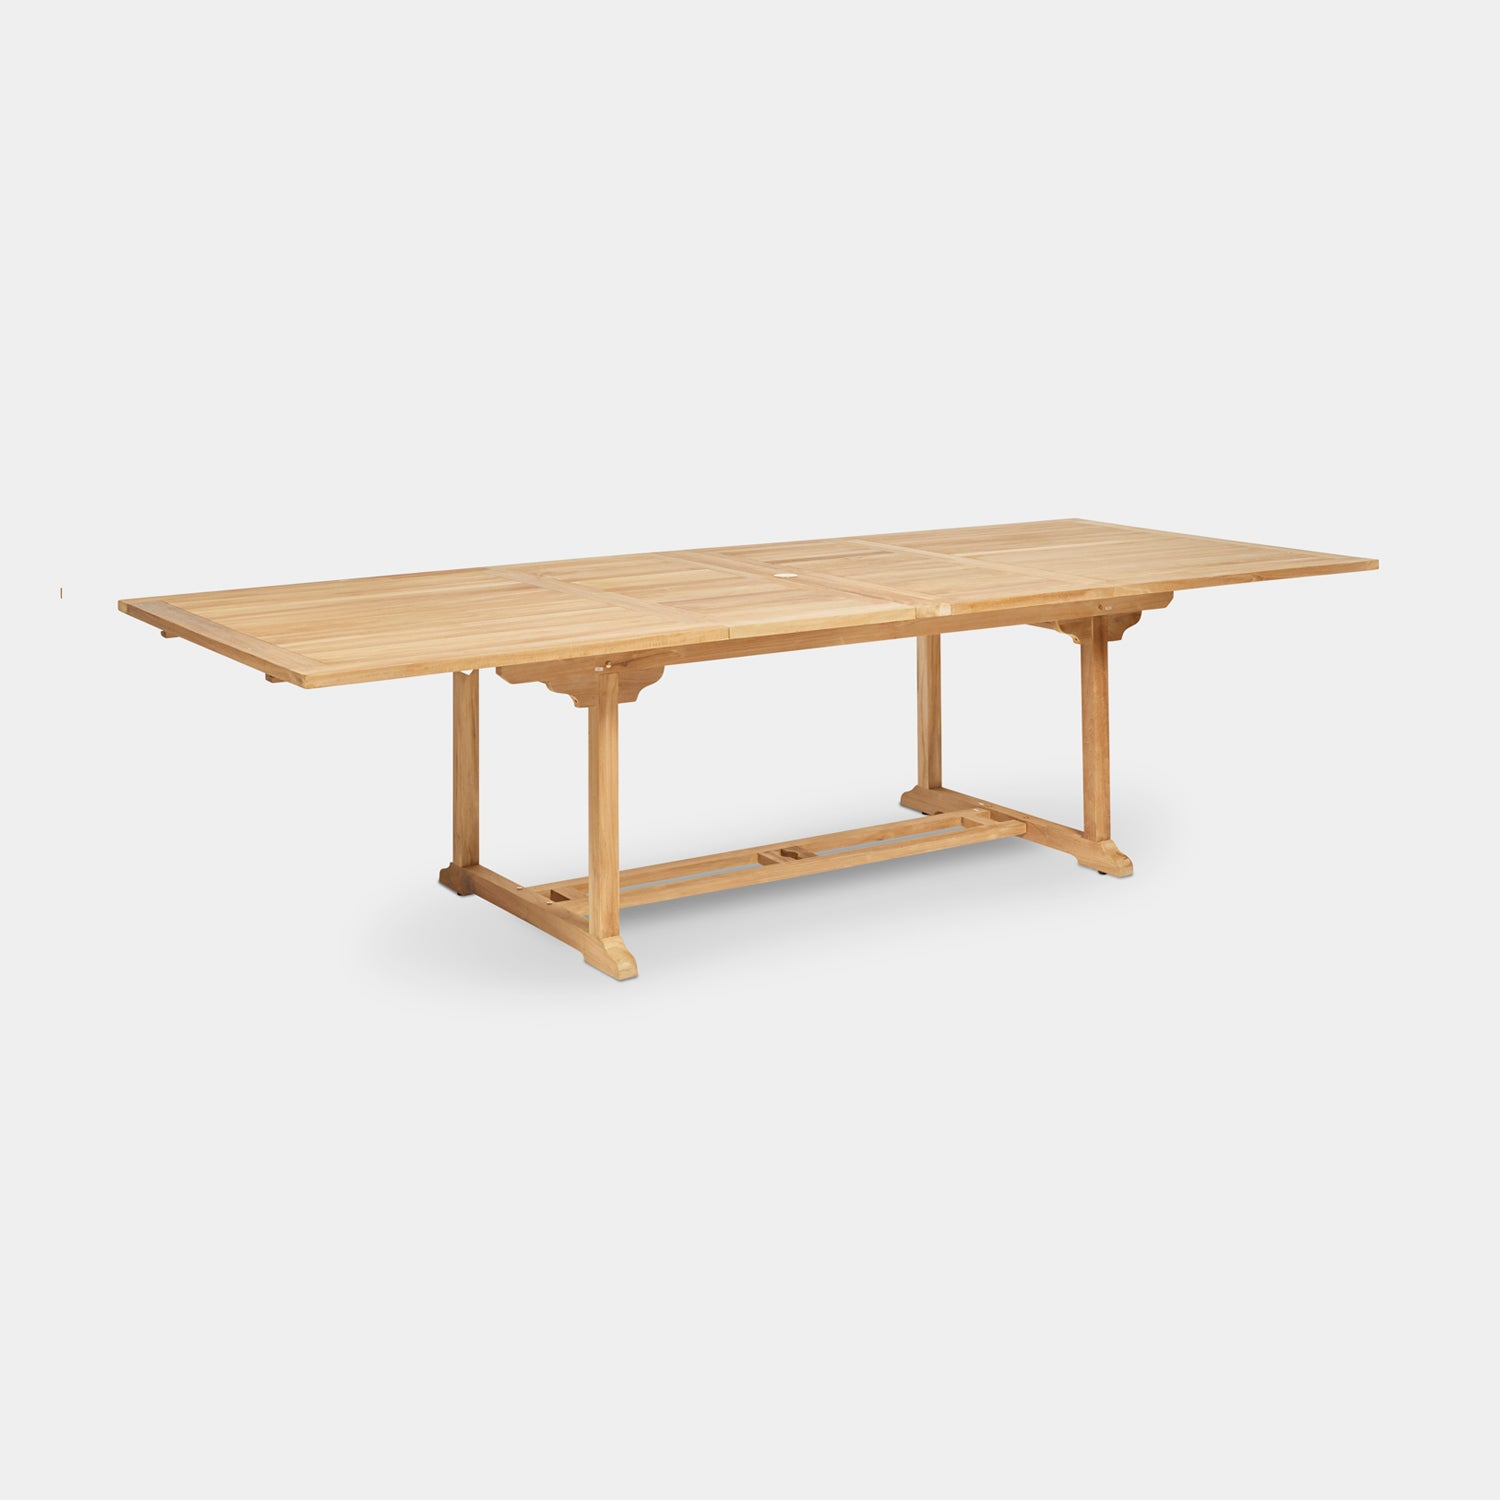 Teak-Double-Rectangle-Extending-Table-r1